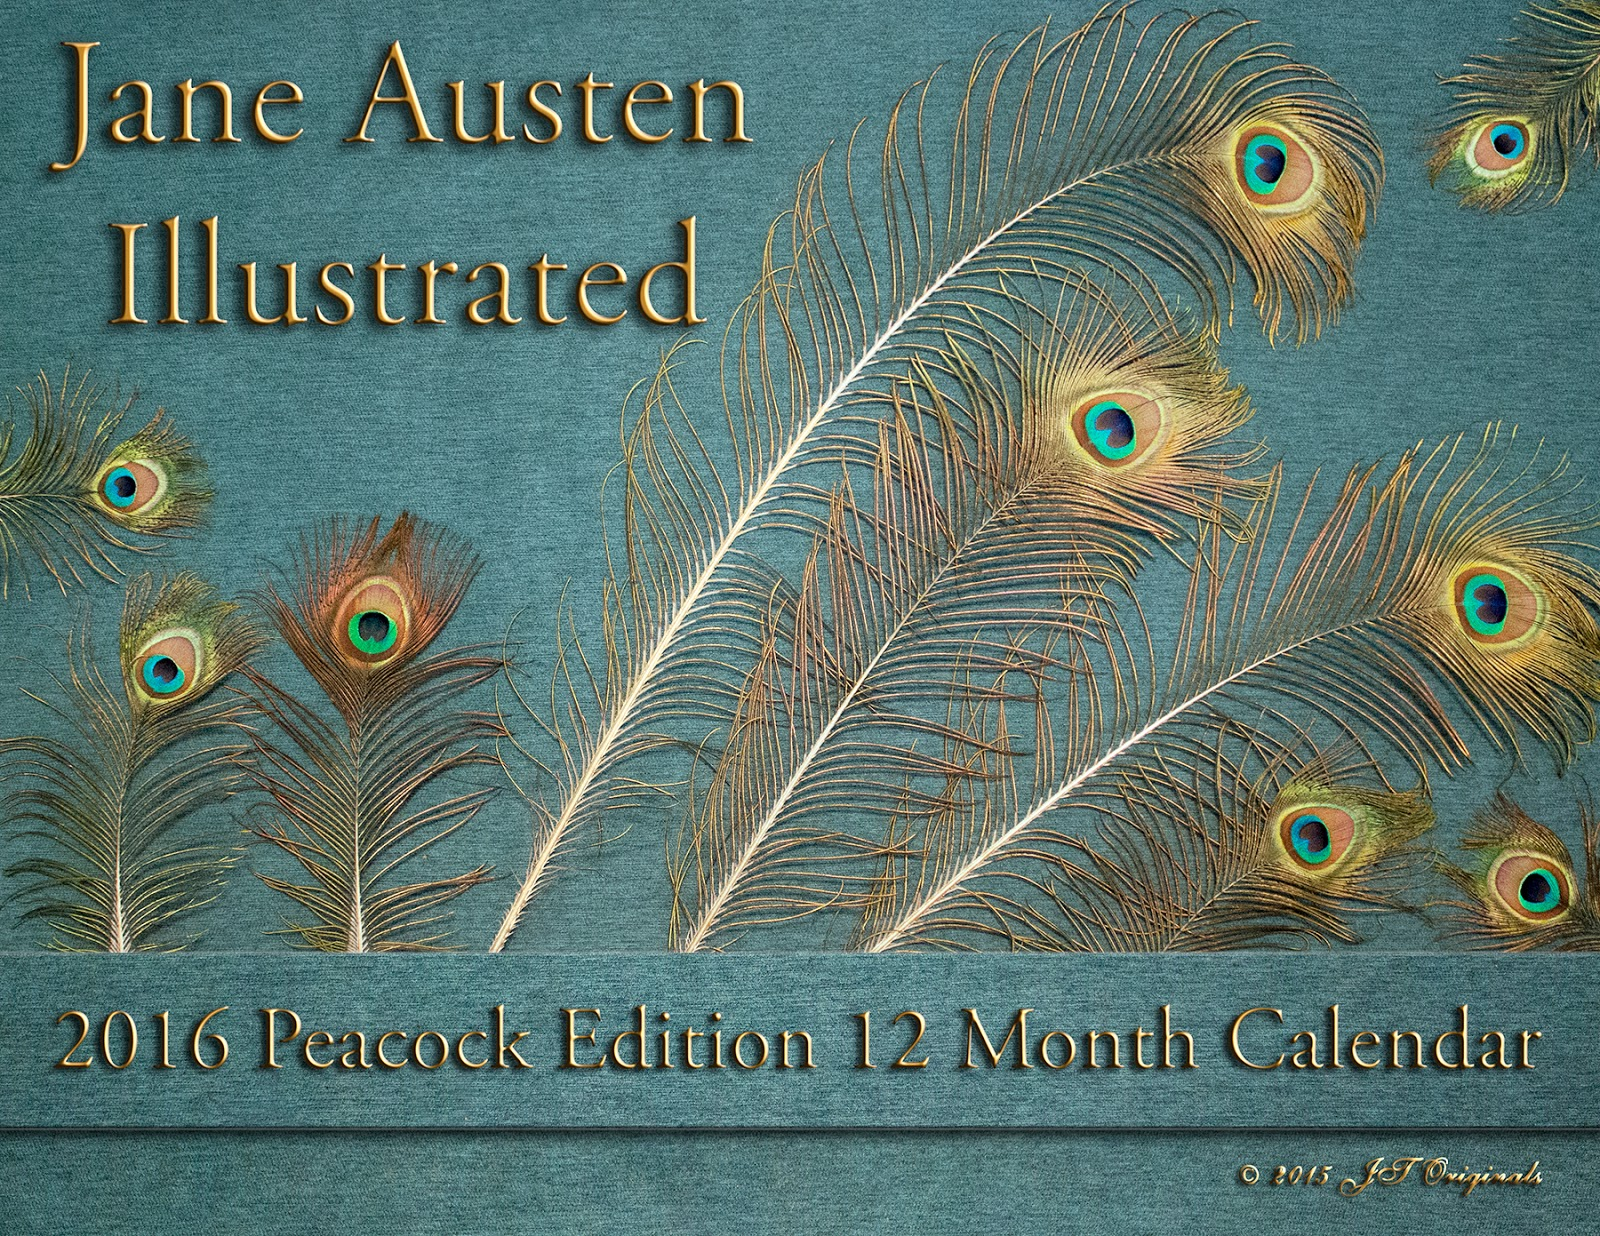 This Years Theme Is Jane Austen Illustrated 2016 Peacock Edition Calendar It Features Some Of The Illustrations By Hugh Thomson